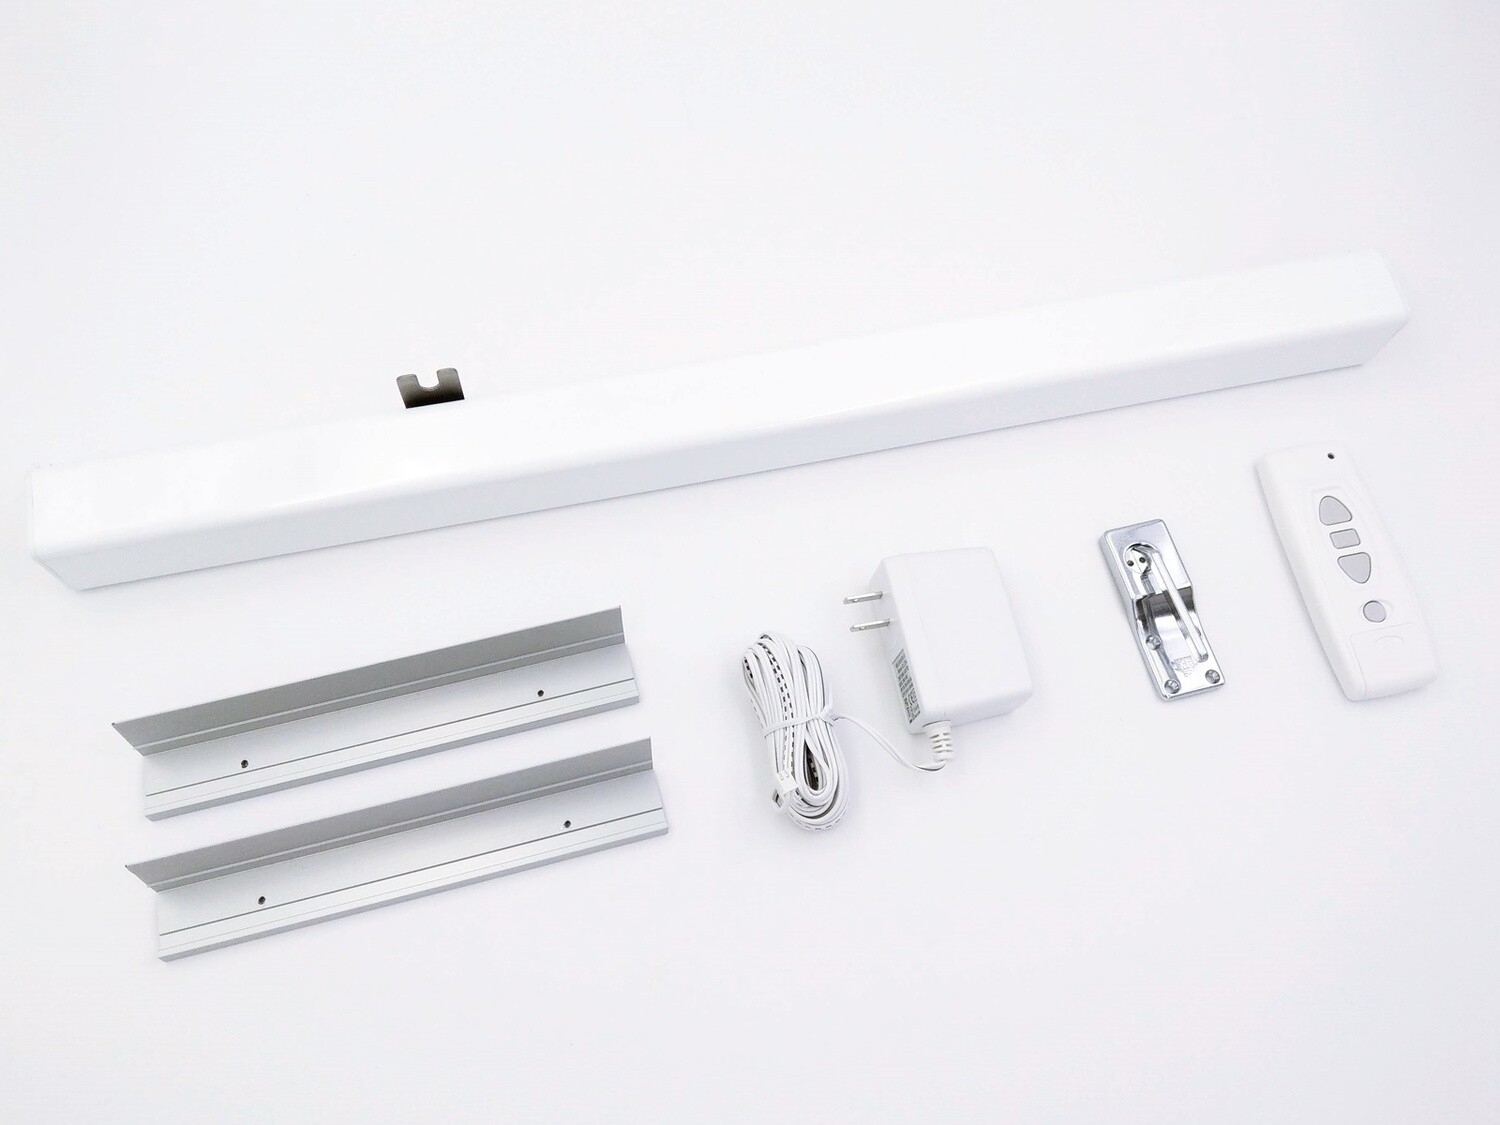 KST-SL01 Track Linear Actuator, Automatic Window Opener For Sliding  Windows, built-in remote control panel